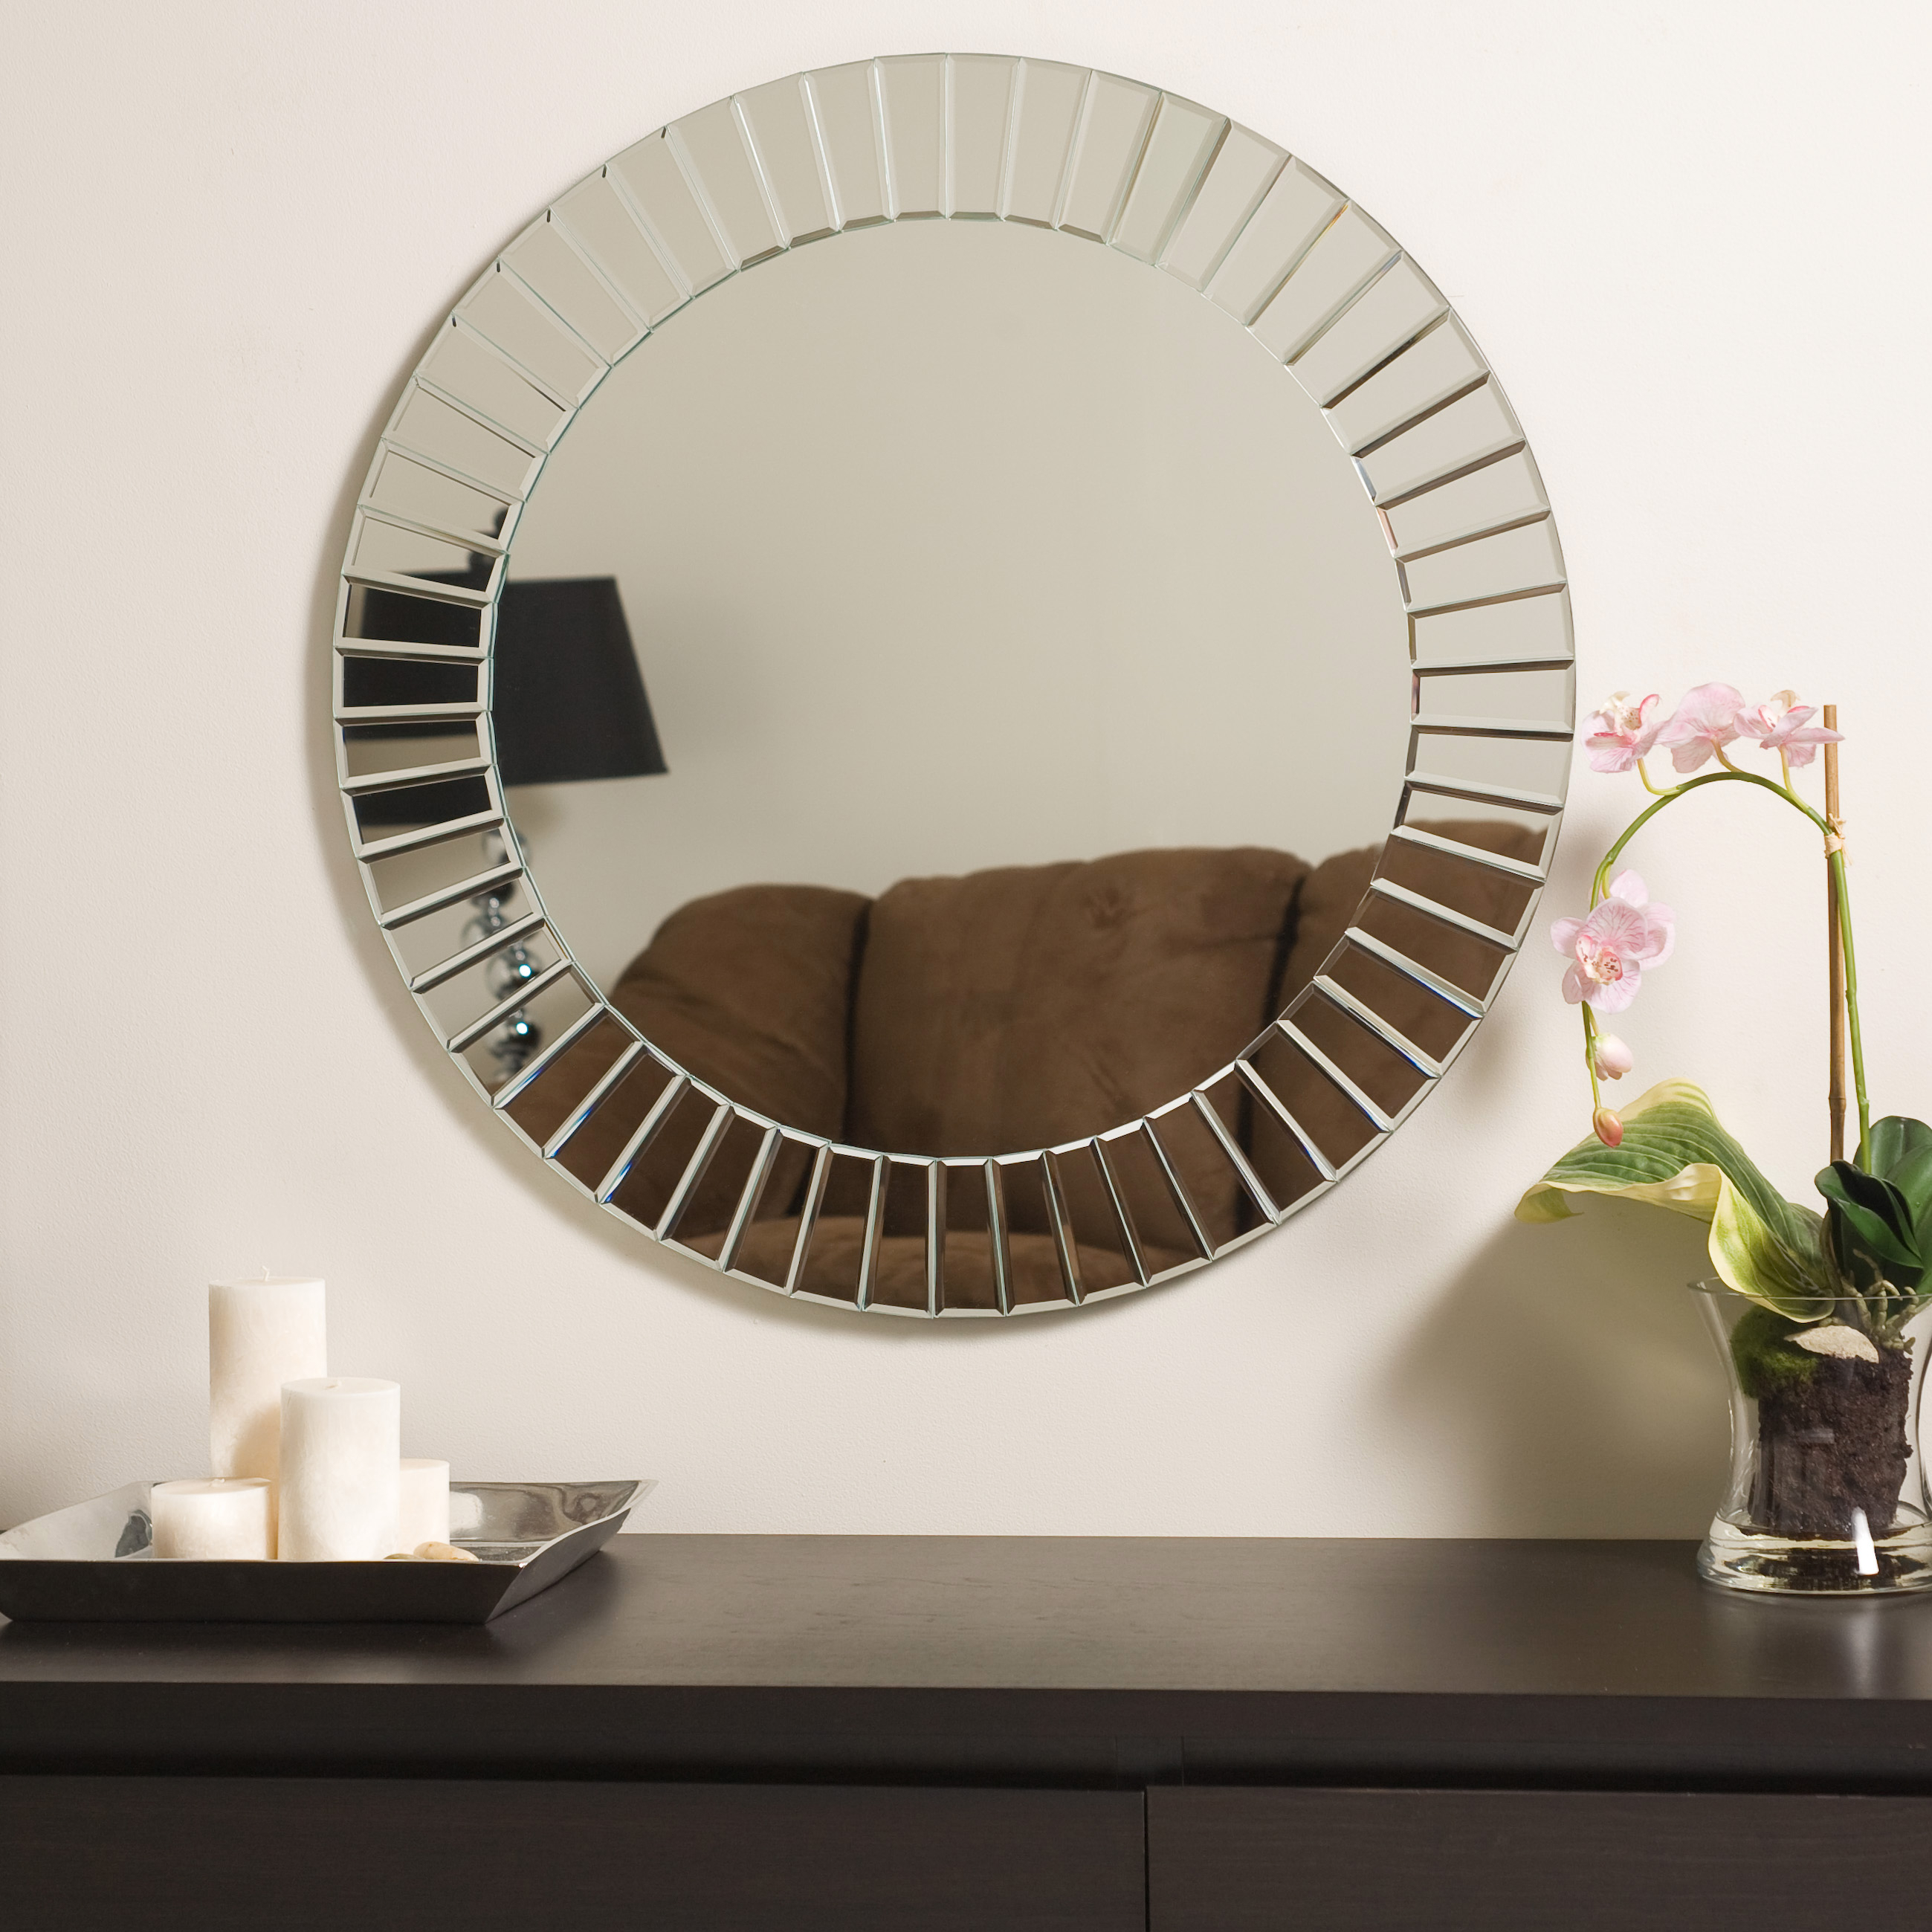 Decor Wonderland Pertaining To Modern & Contemporary Beveled Wall Mirrors (Gallery 29 of 30)